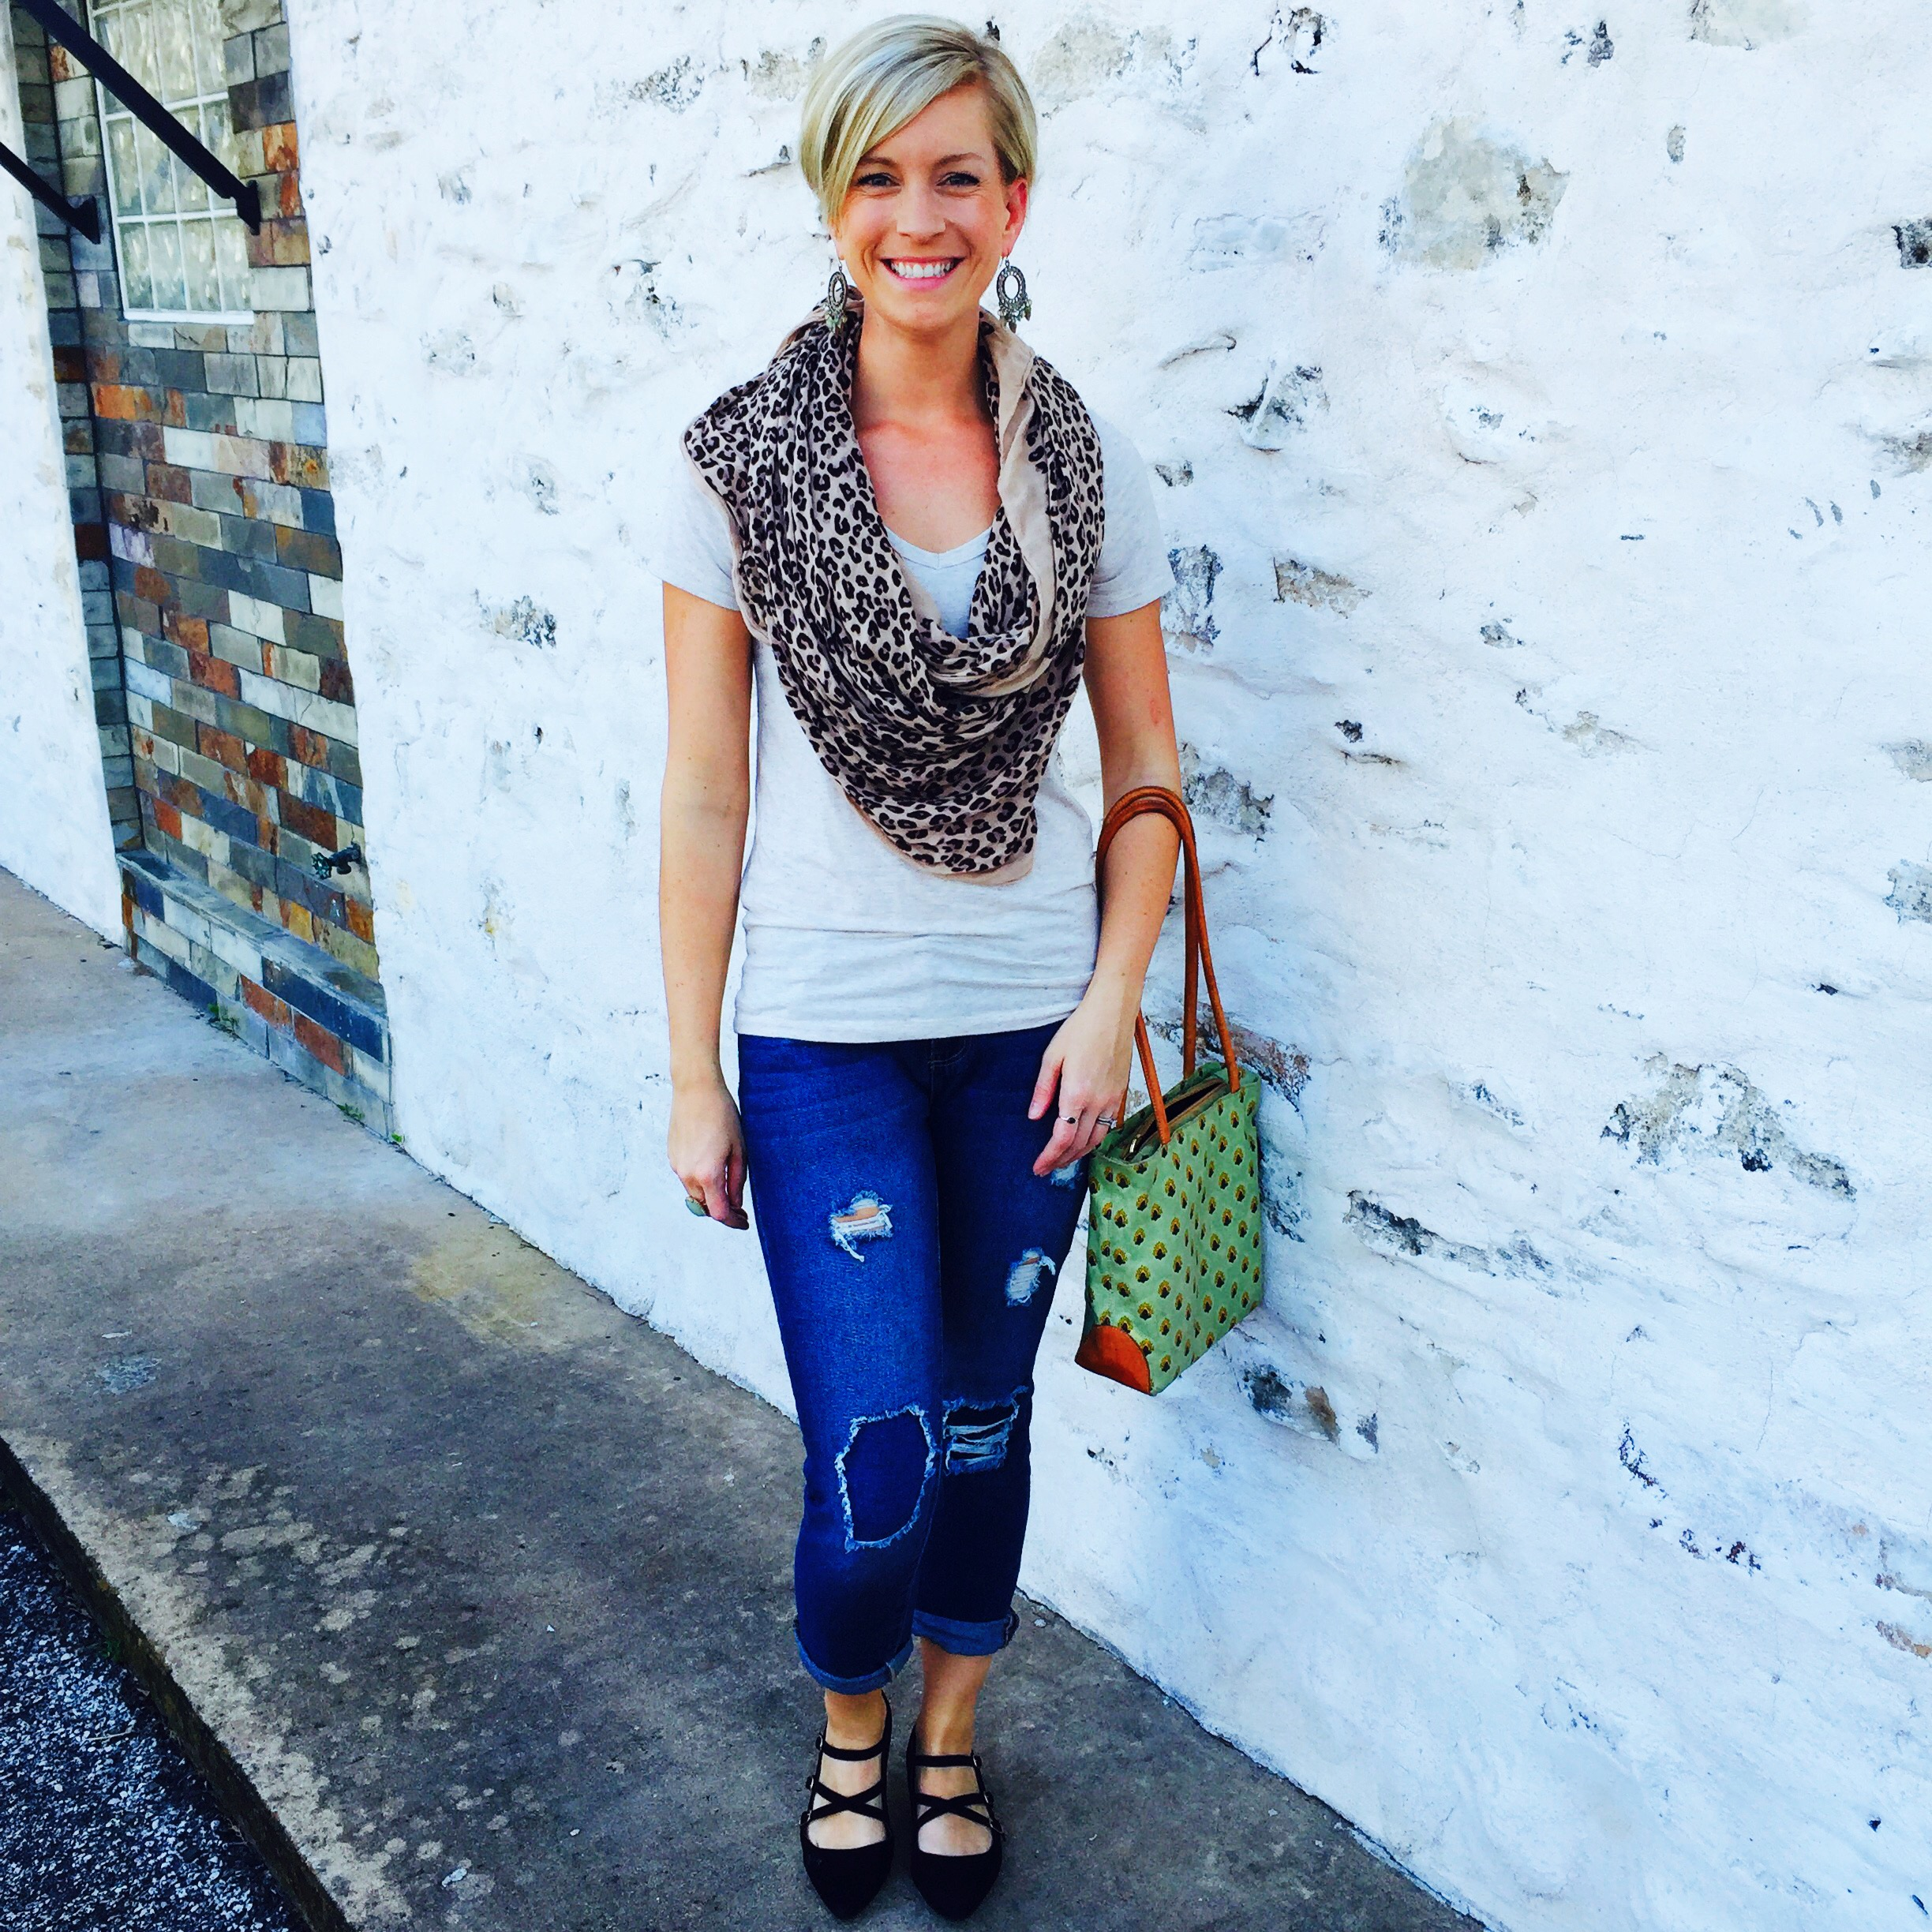 Emily Blanco models a casual look with some ripped jeans, black scrappy flats, a cheetah-print infinity scarf, a simple tee, and some statement earrings.